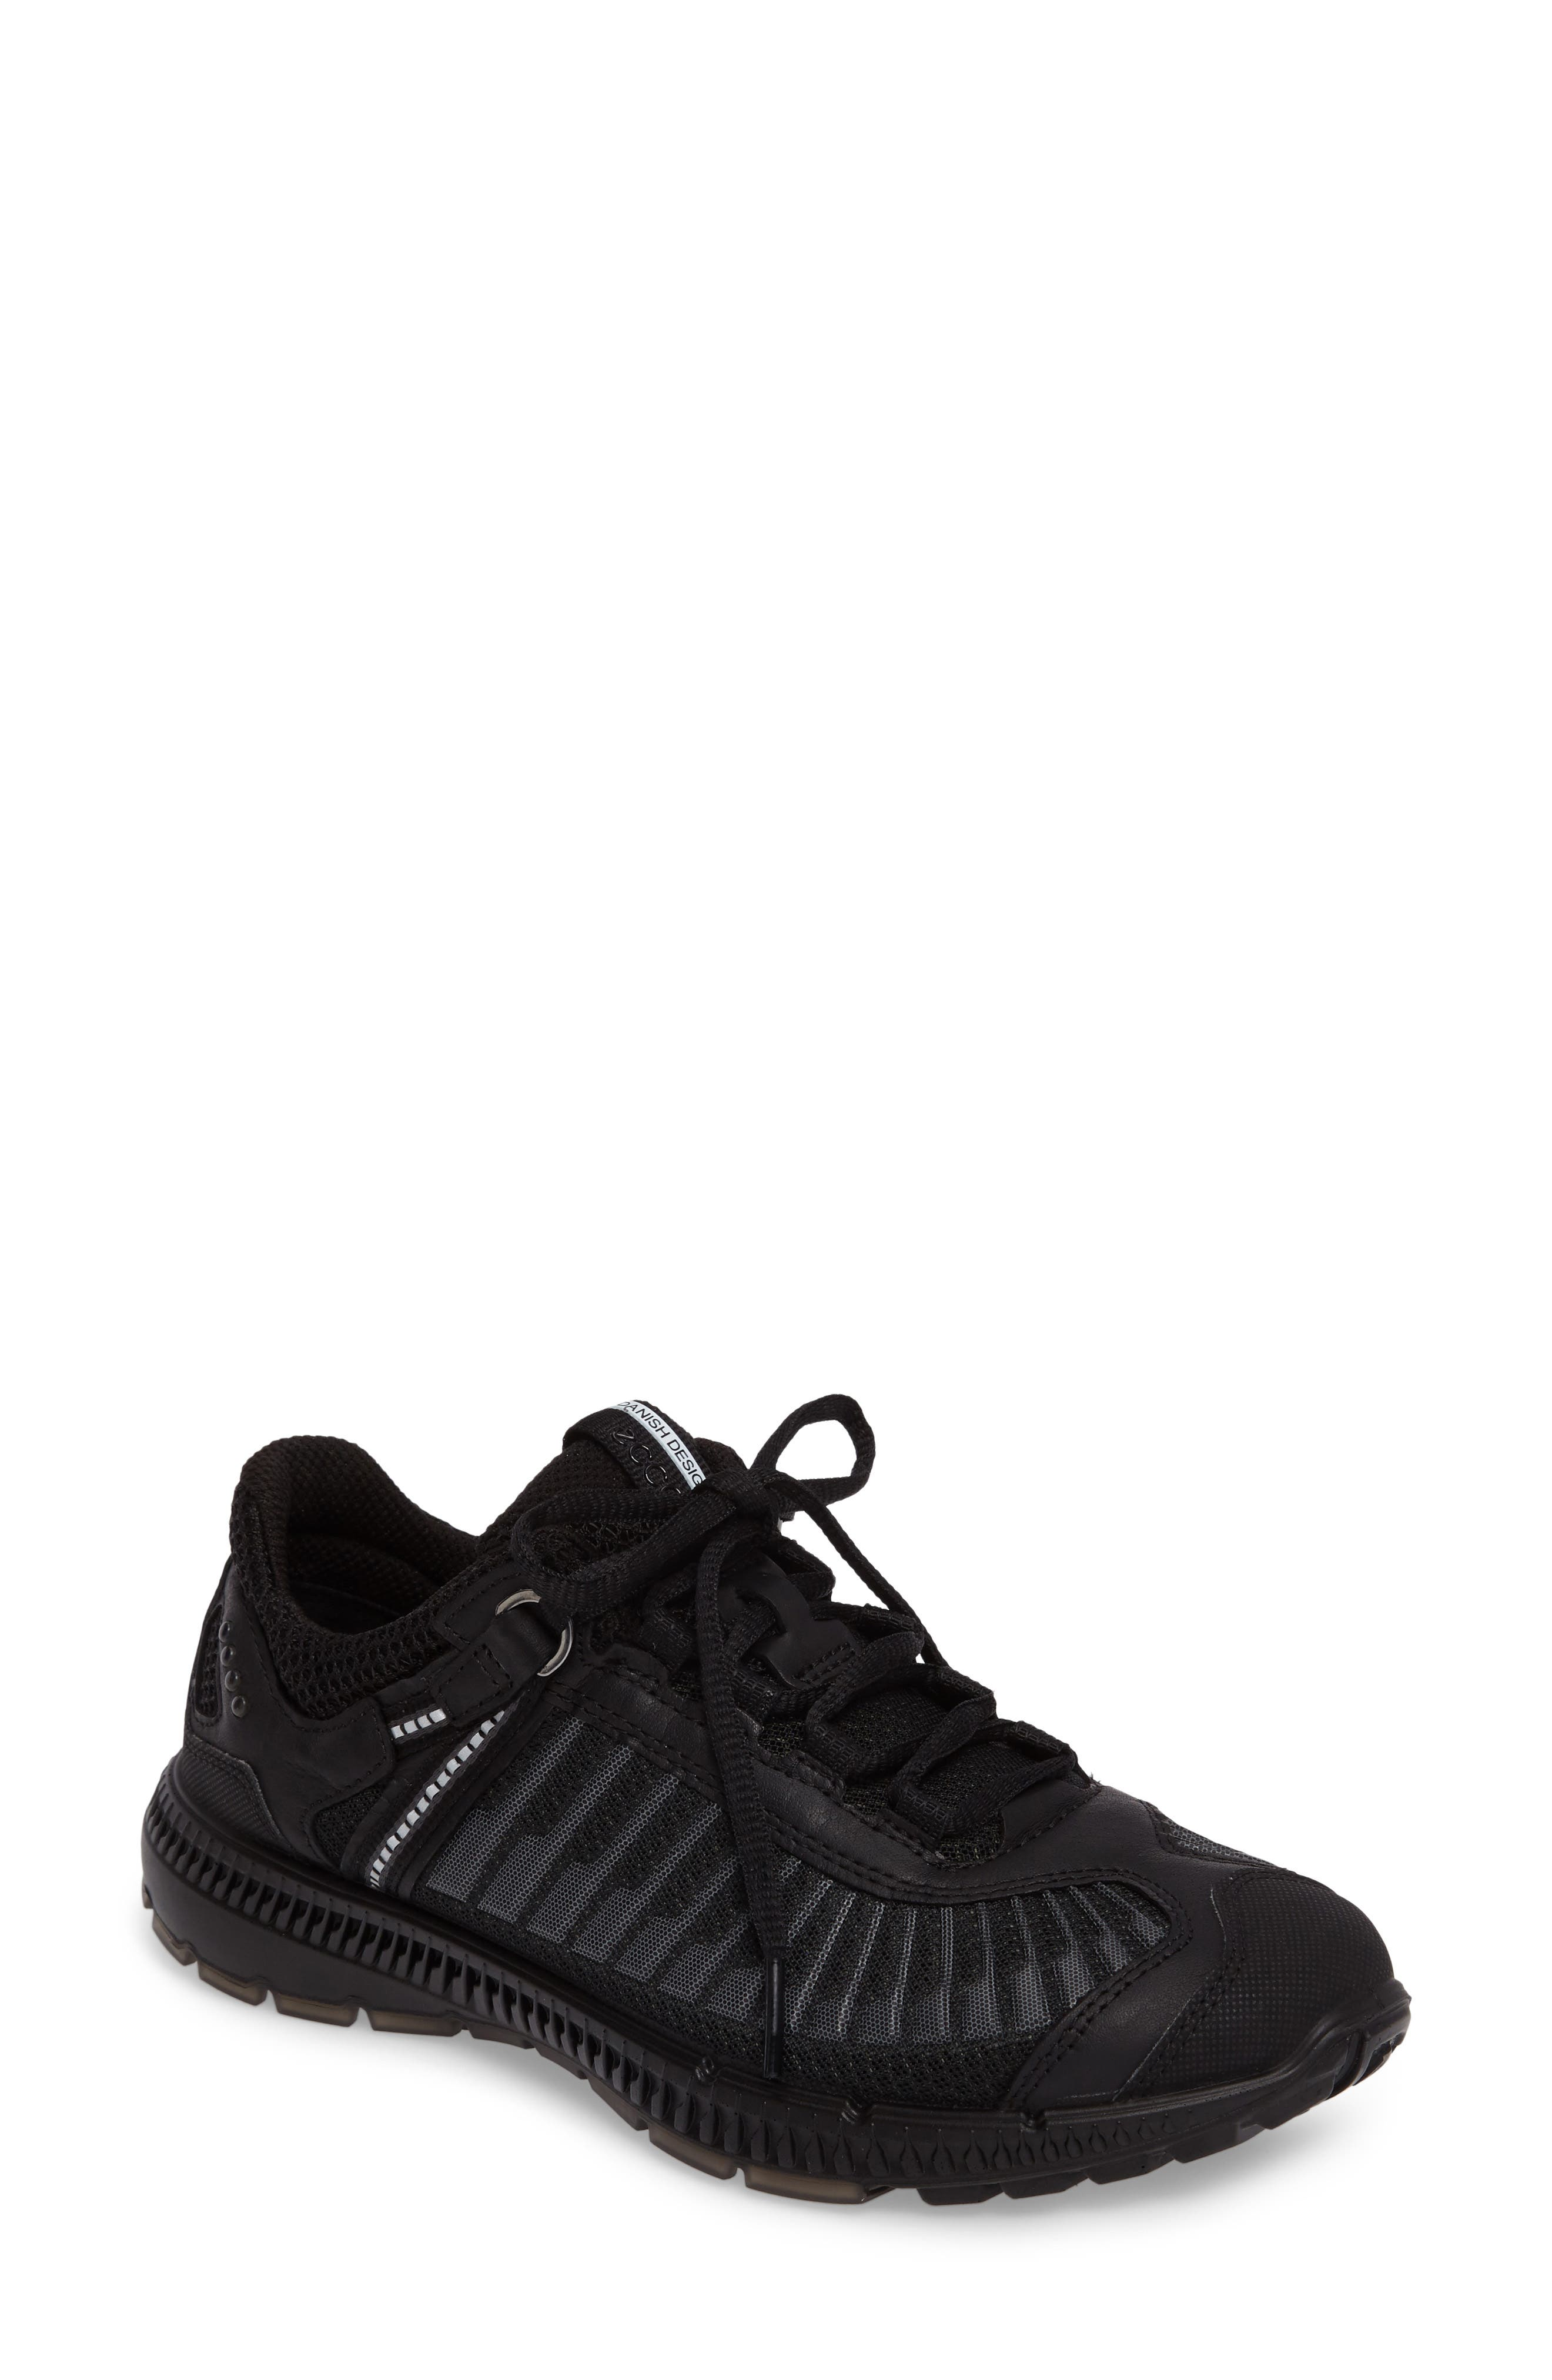 Intrinsic TR Running Shoe,                             Main thumbnail 1, color,                             Black Leather